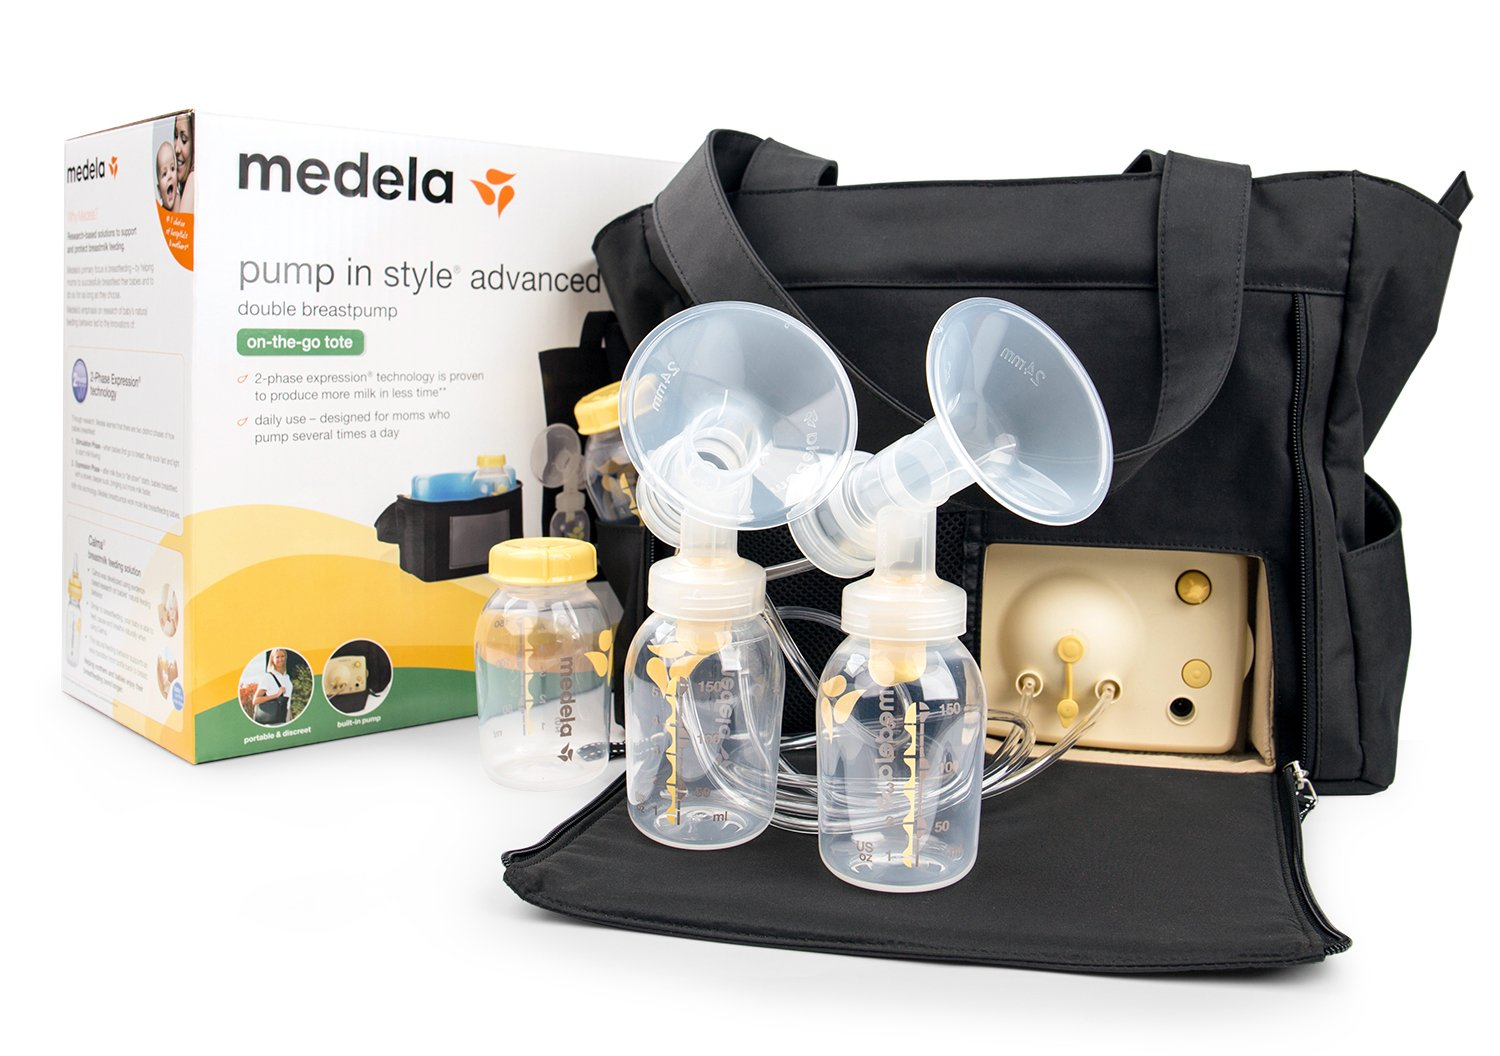 New Pump in Style Advanced Double Breastpump (Handbag)